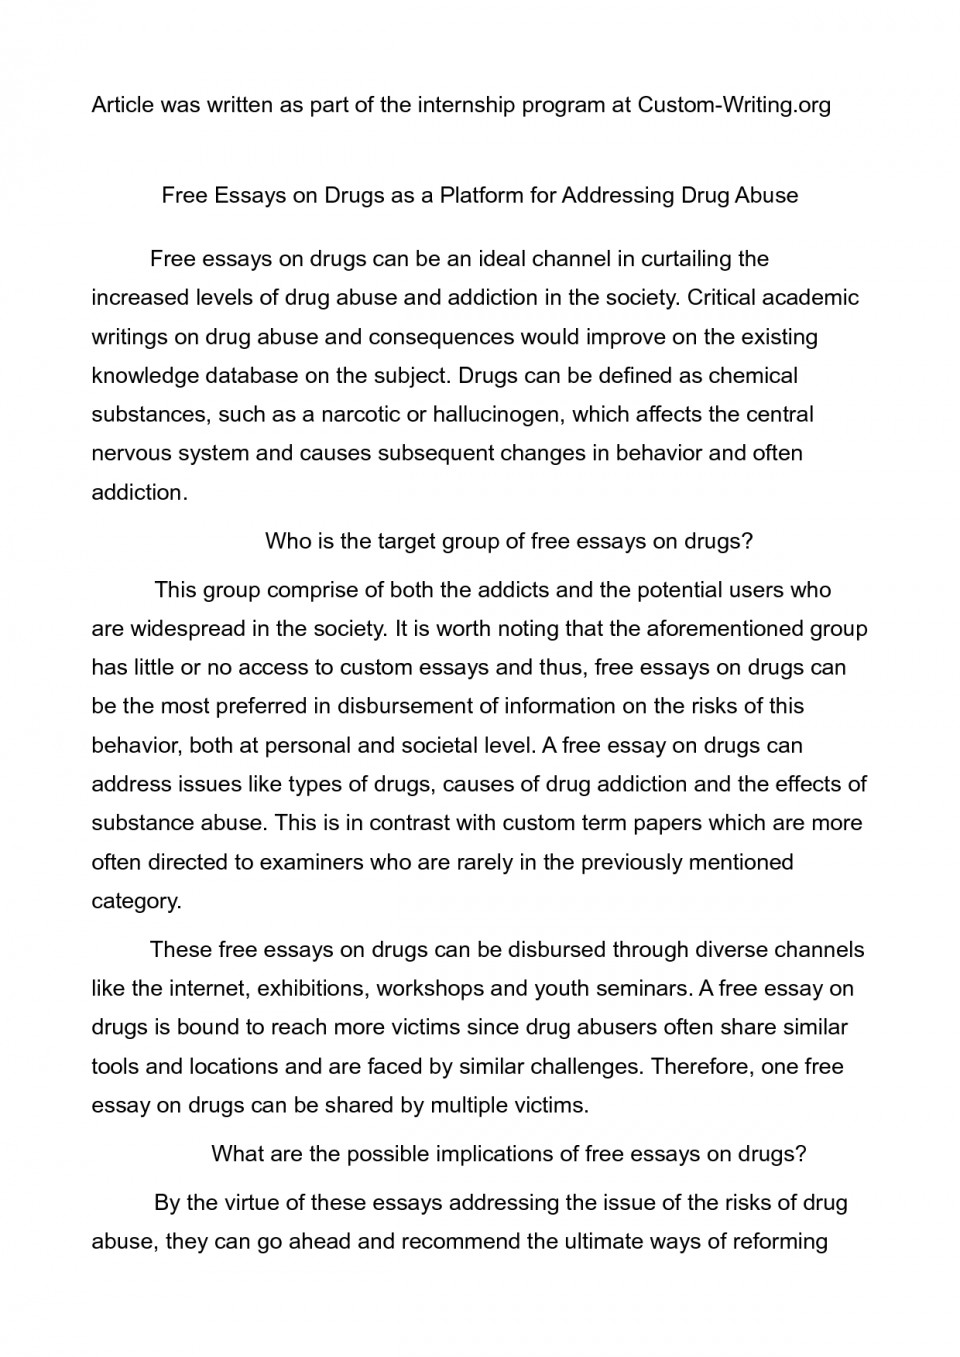 009 Argumentative Essay About Drugs Amazing Sample 6th Grade Introduction Format 960